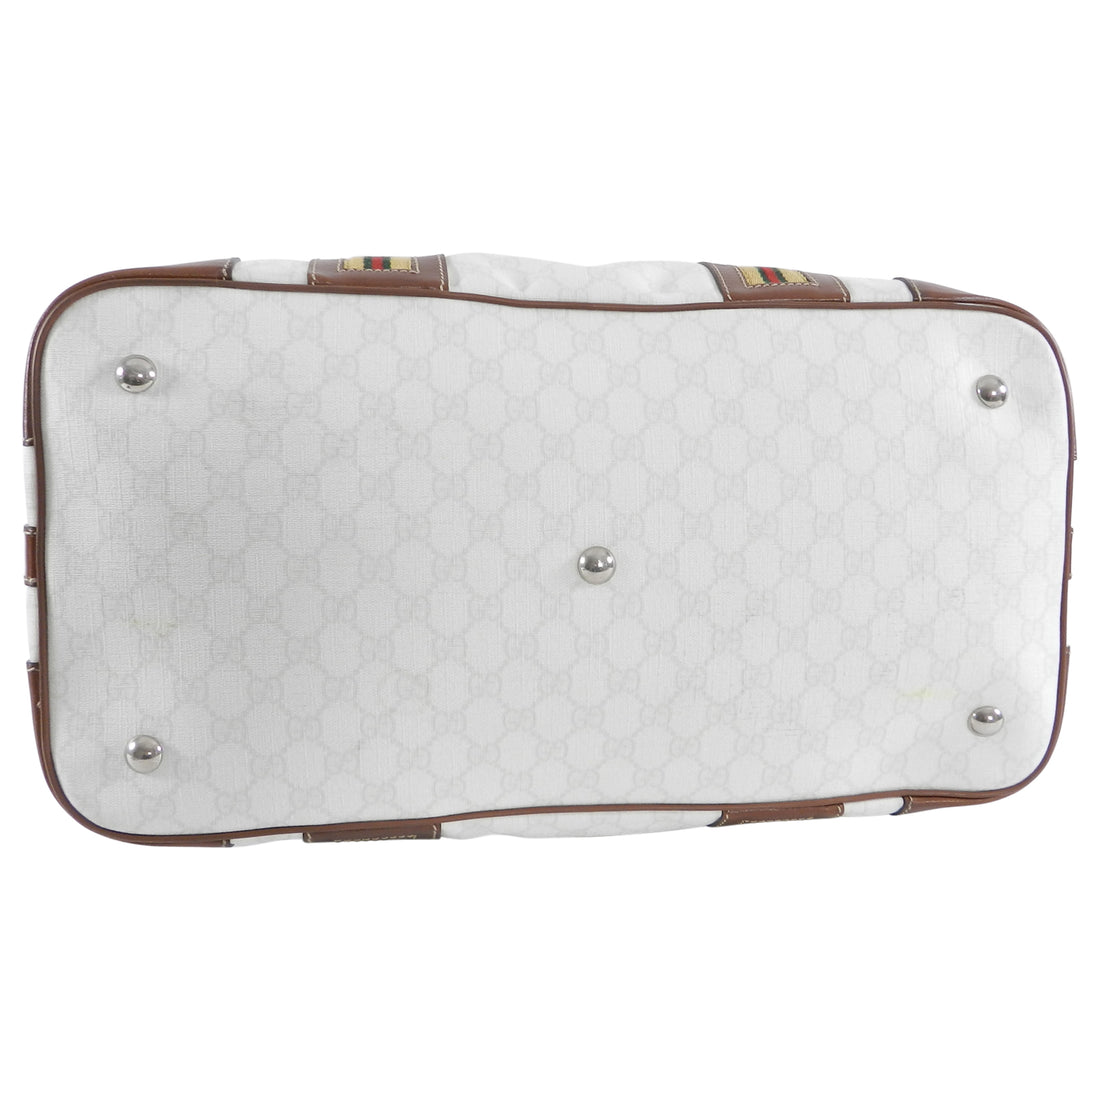 Gucci White Monogram Doctor Travel Overnight Luggage Bag